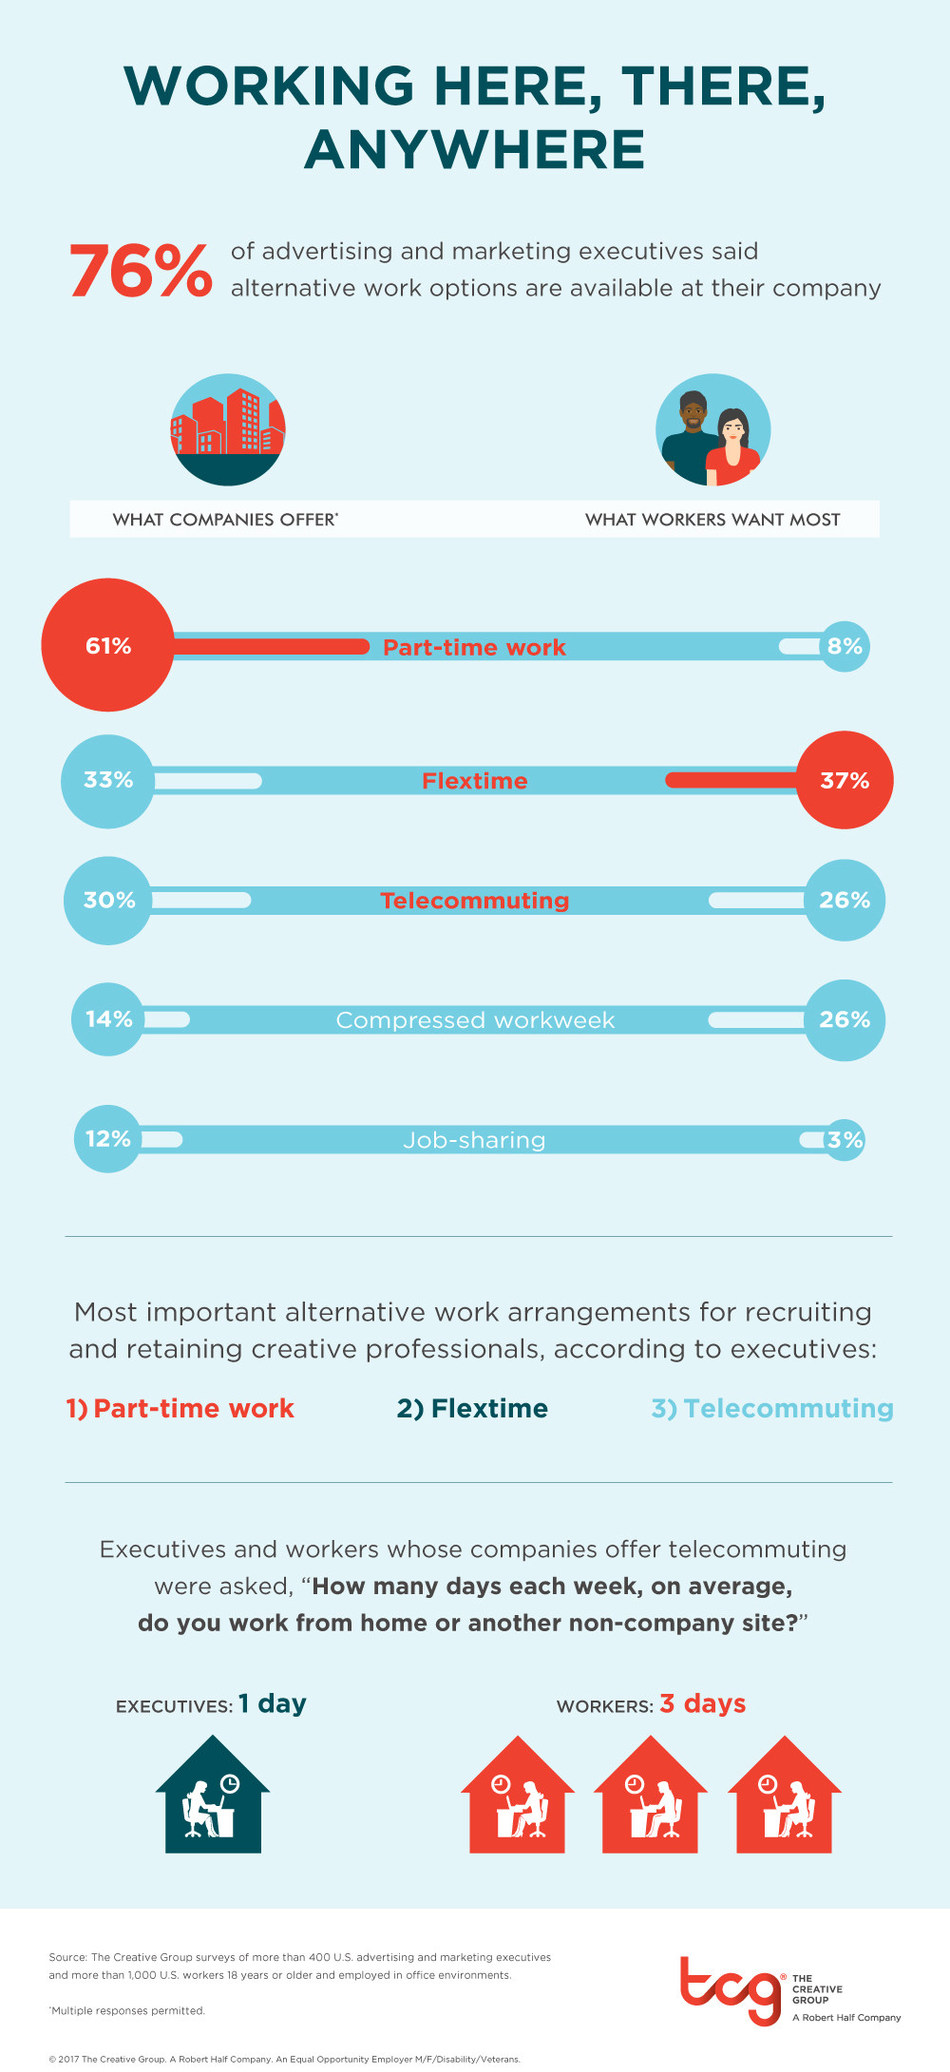 Research from The Creative Group suggests alternative work arrangements are becoming the norm